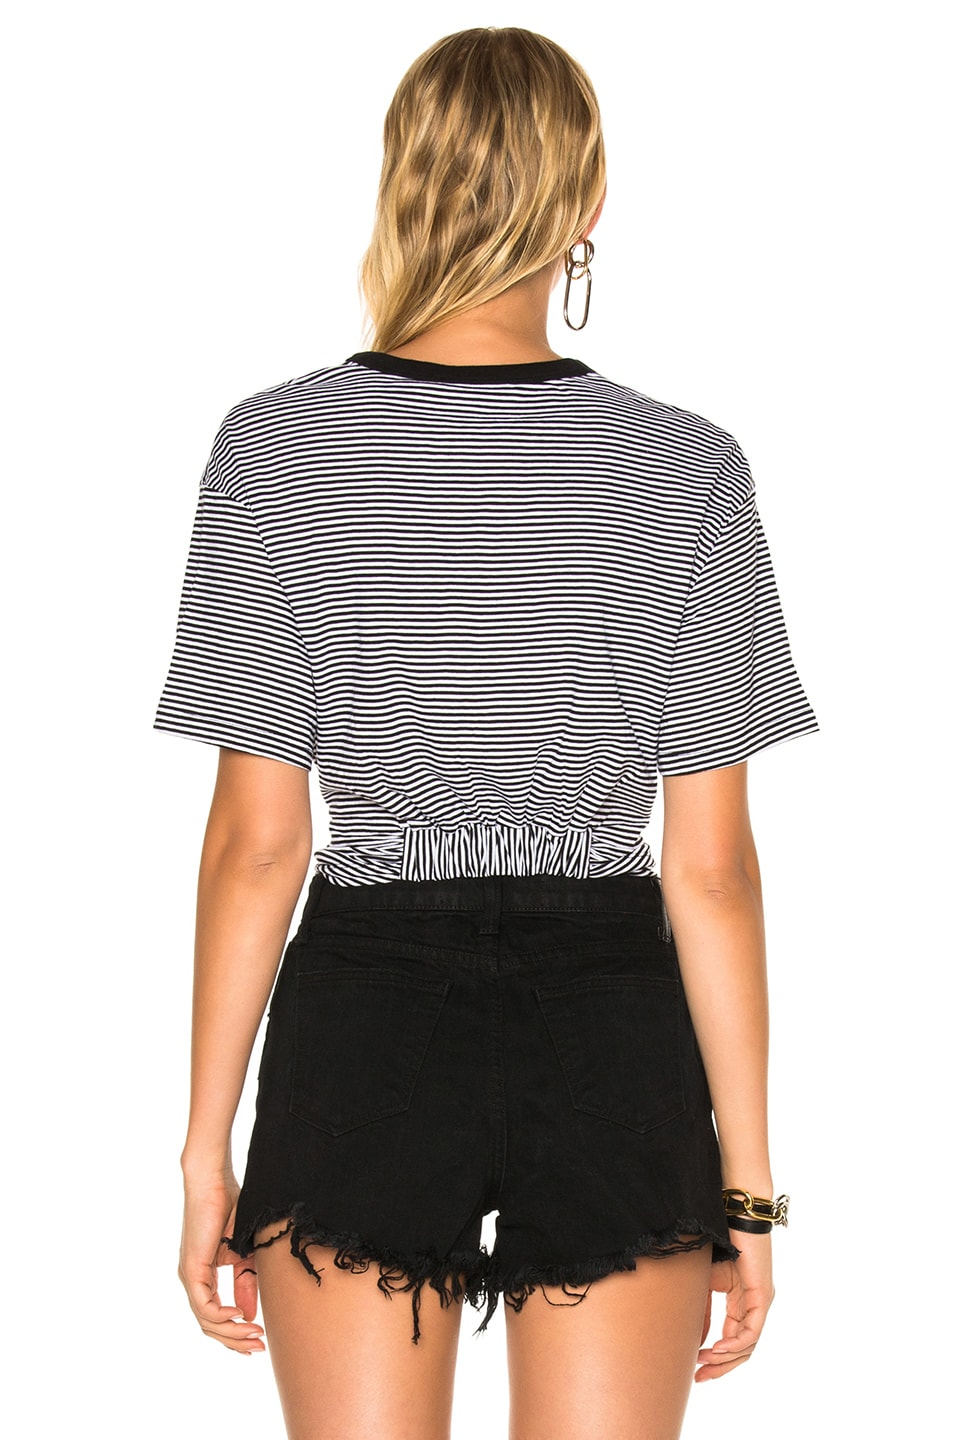 Image 4 of T by Alexander Wang Cotton Jersey Twist Front Short Sleeve Tee in Black & White